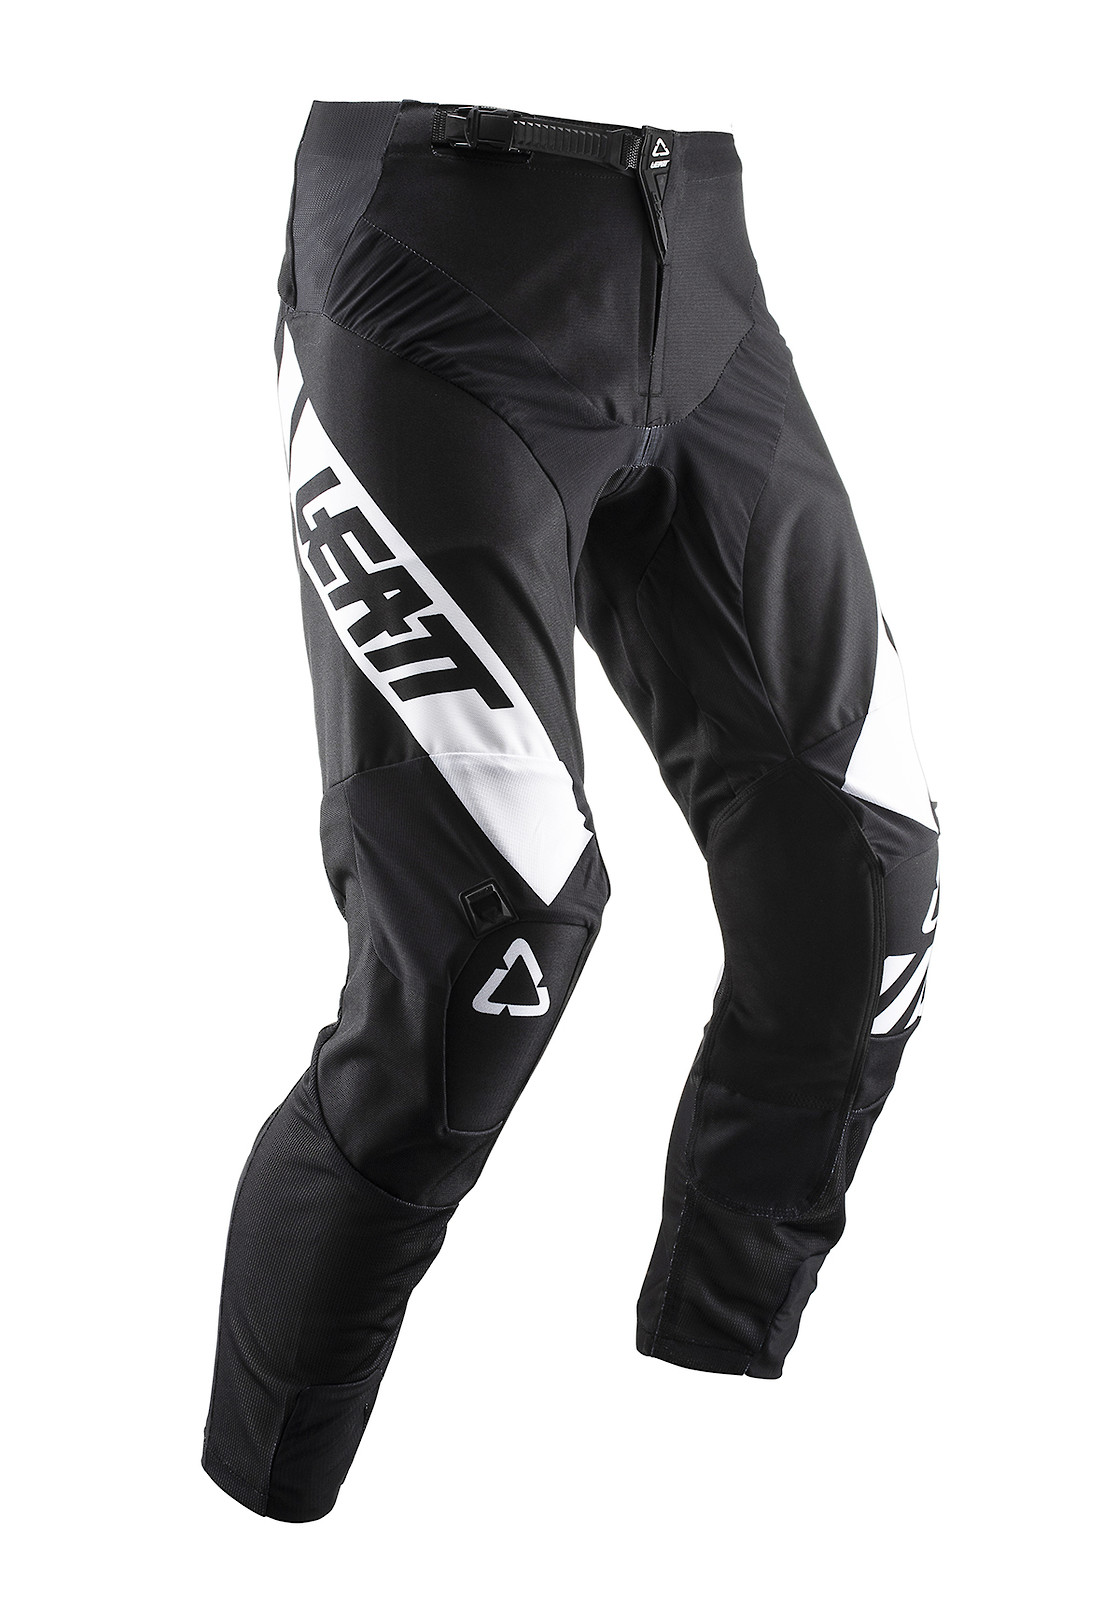 Leatt_Pant_GPX4.5_Black_FrontLeft_5019021170